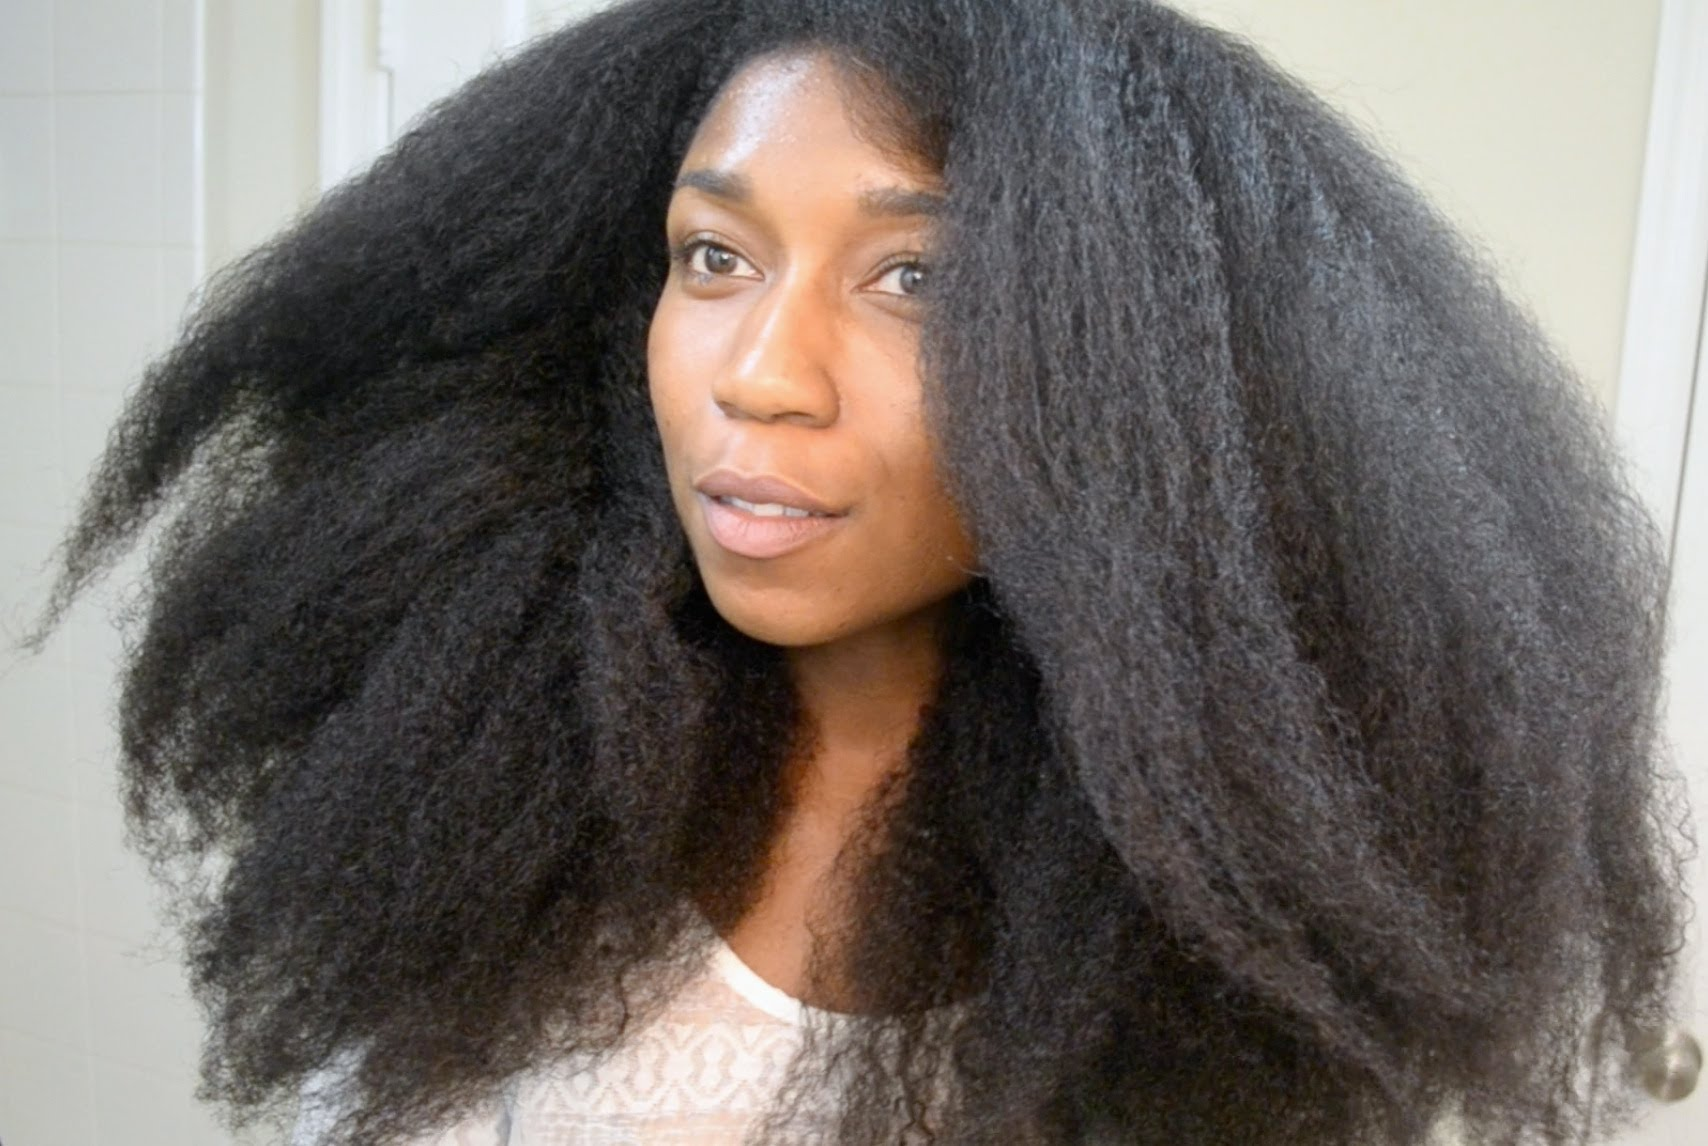 Whitney White with blow-out of current hair length, 2018.